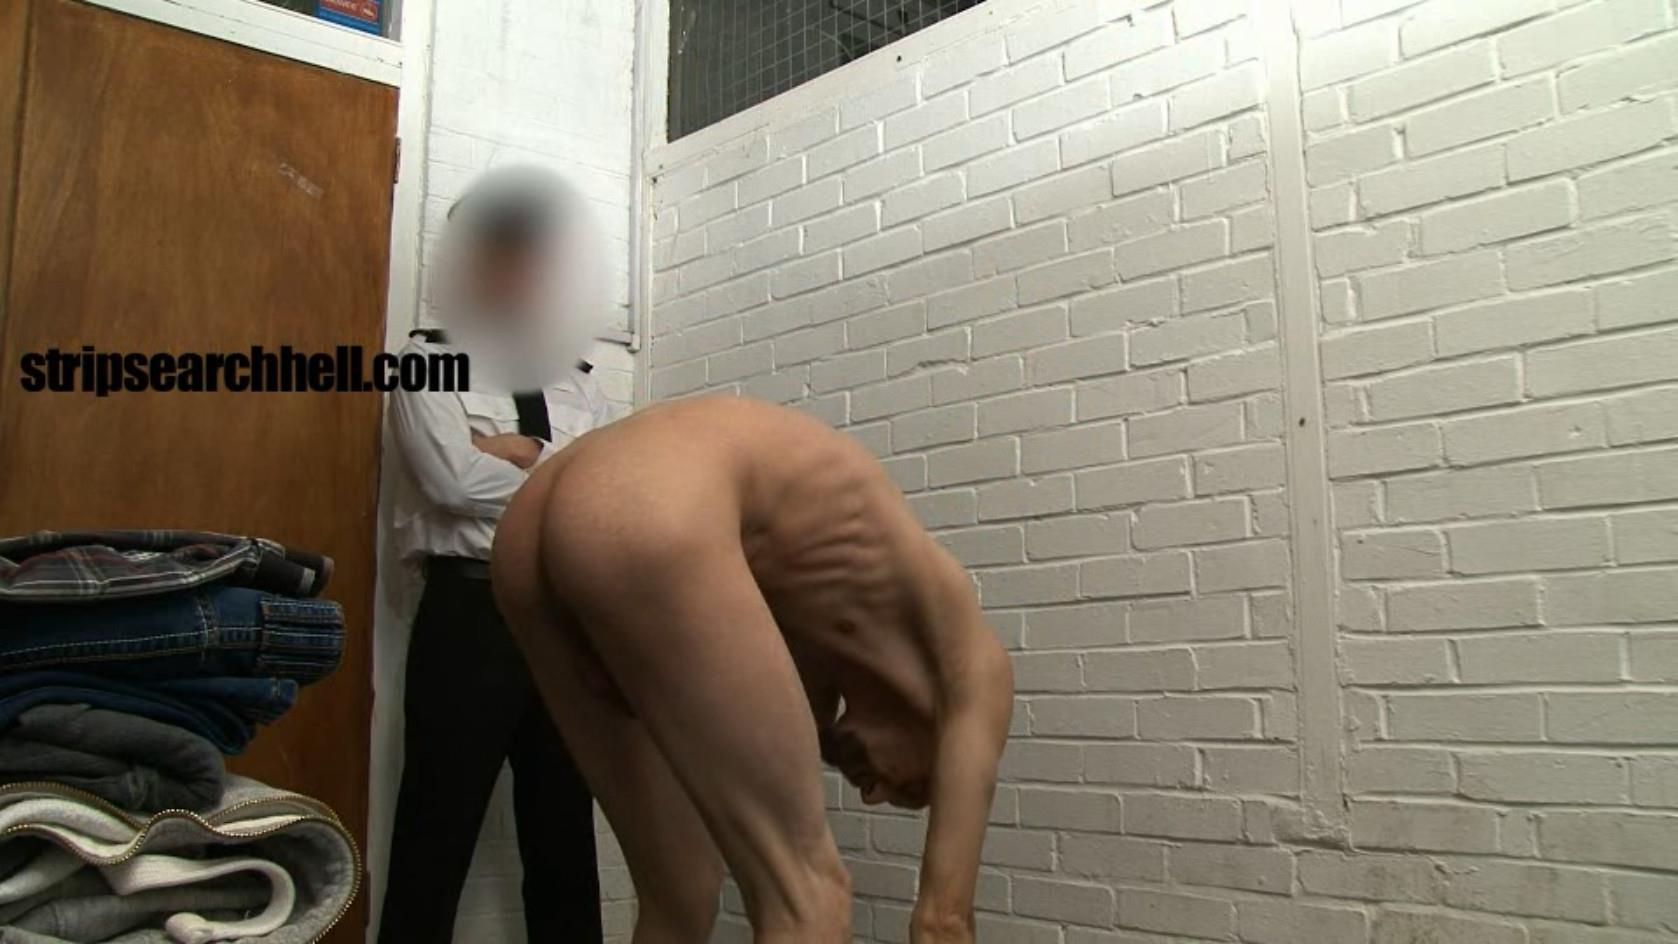 Prision-Strip-Search-Pictures-Guy-With-A-Big-Cock-06 Hidden Prison Strip Search Video And A Guy With A Big Dick